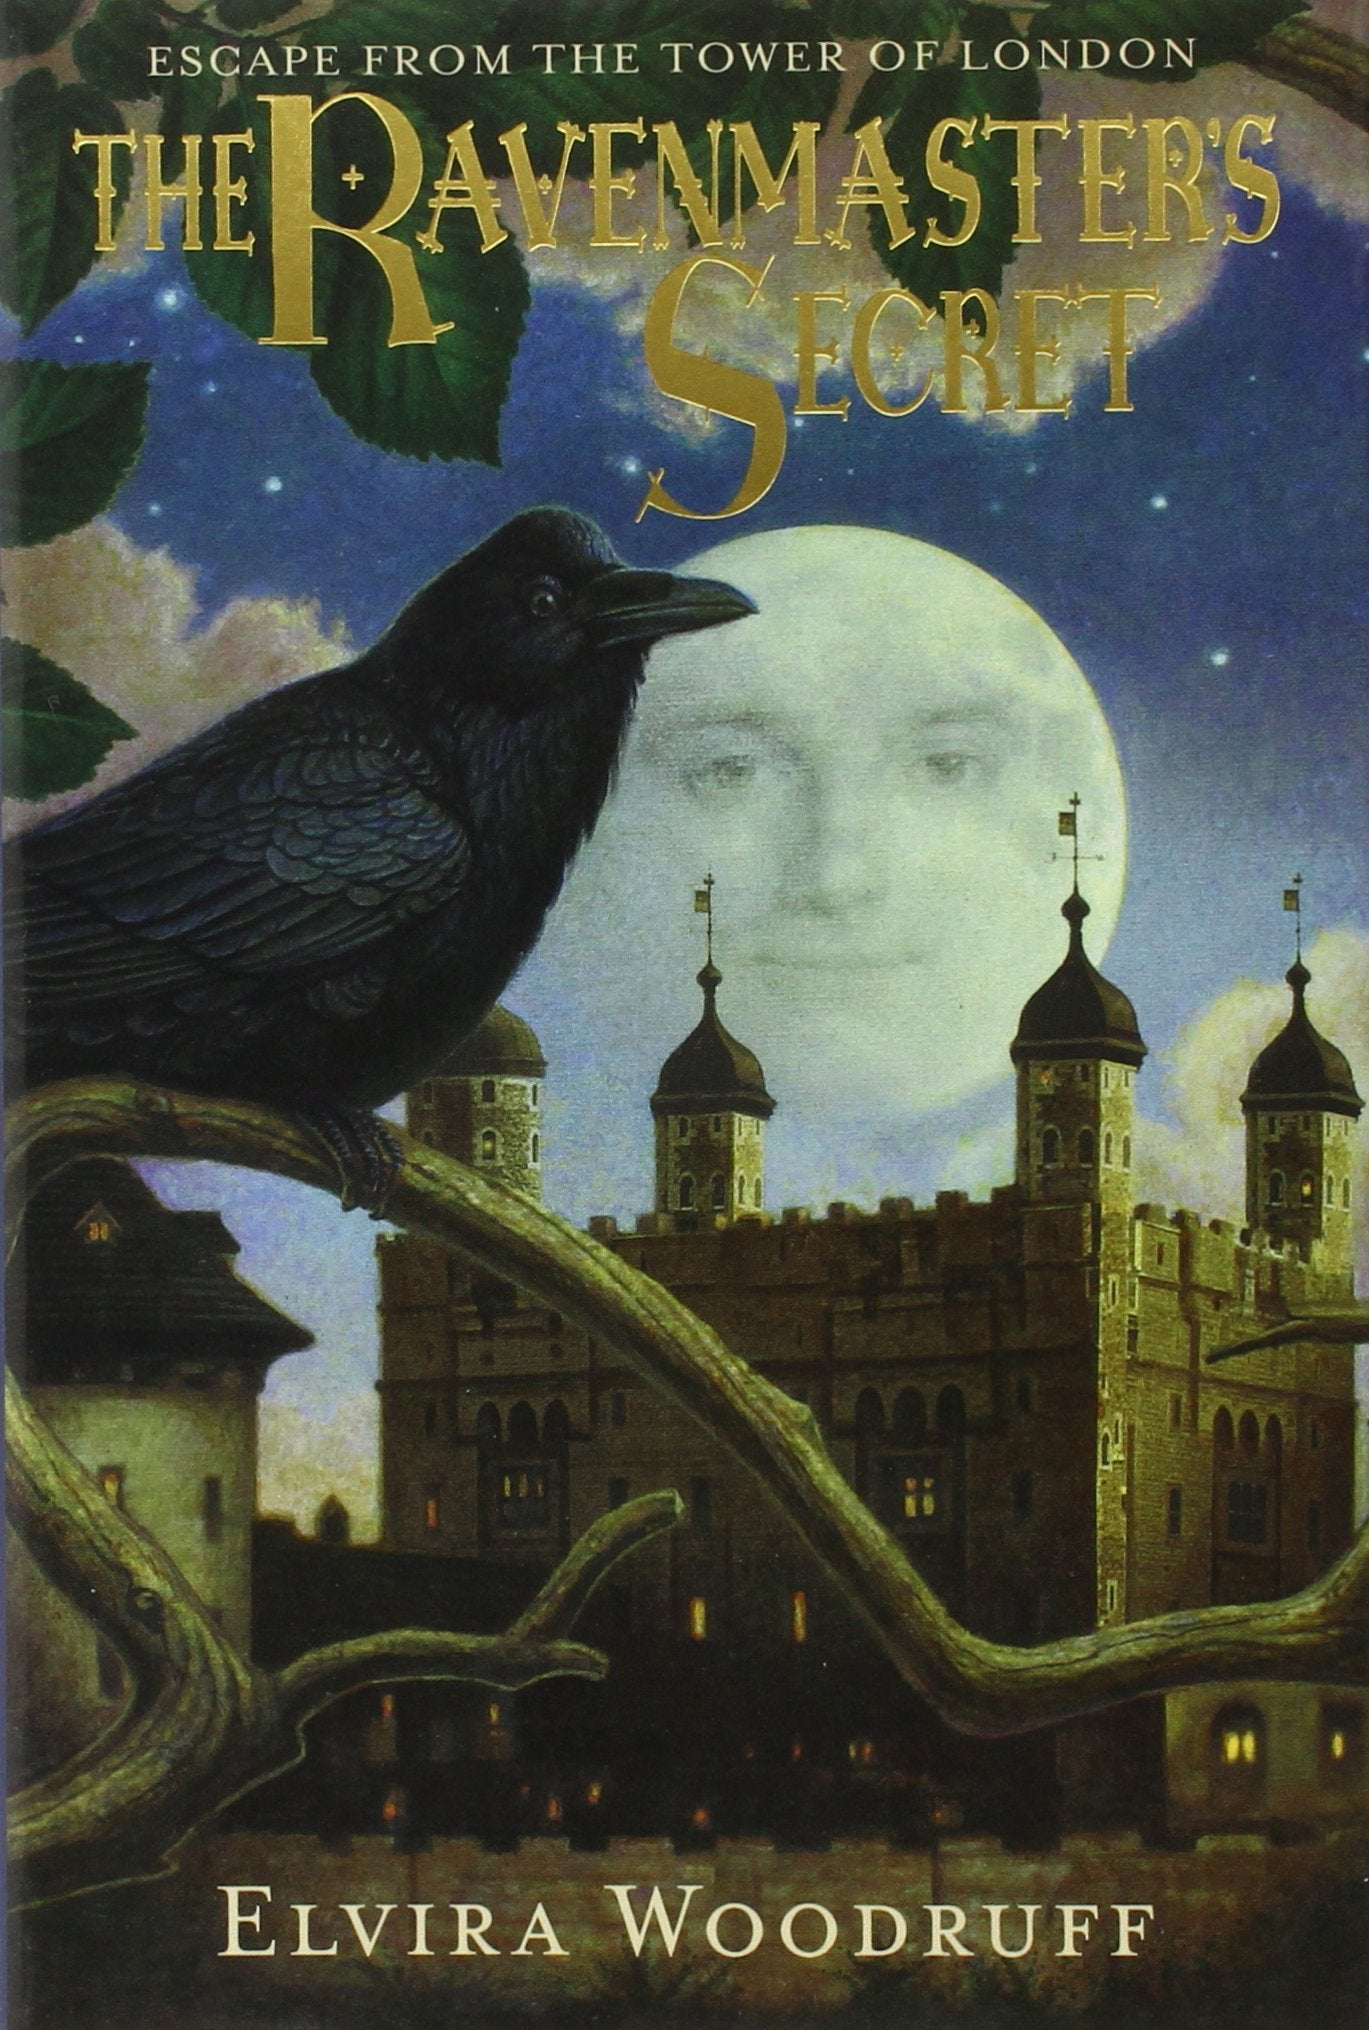 The Ravenmaster's Secret - by Elvira Woodruff (Used - Like New) - Little Green Schoolhouse Books